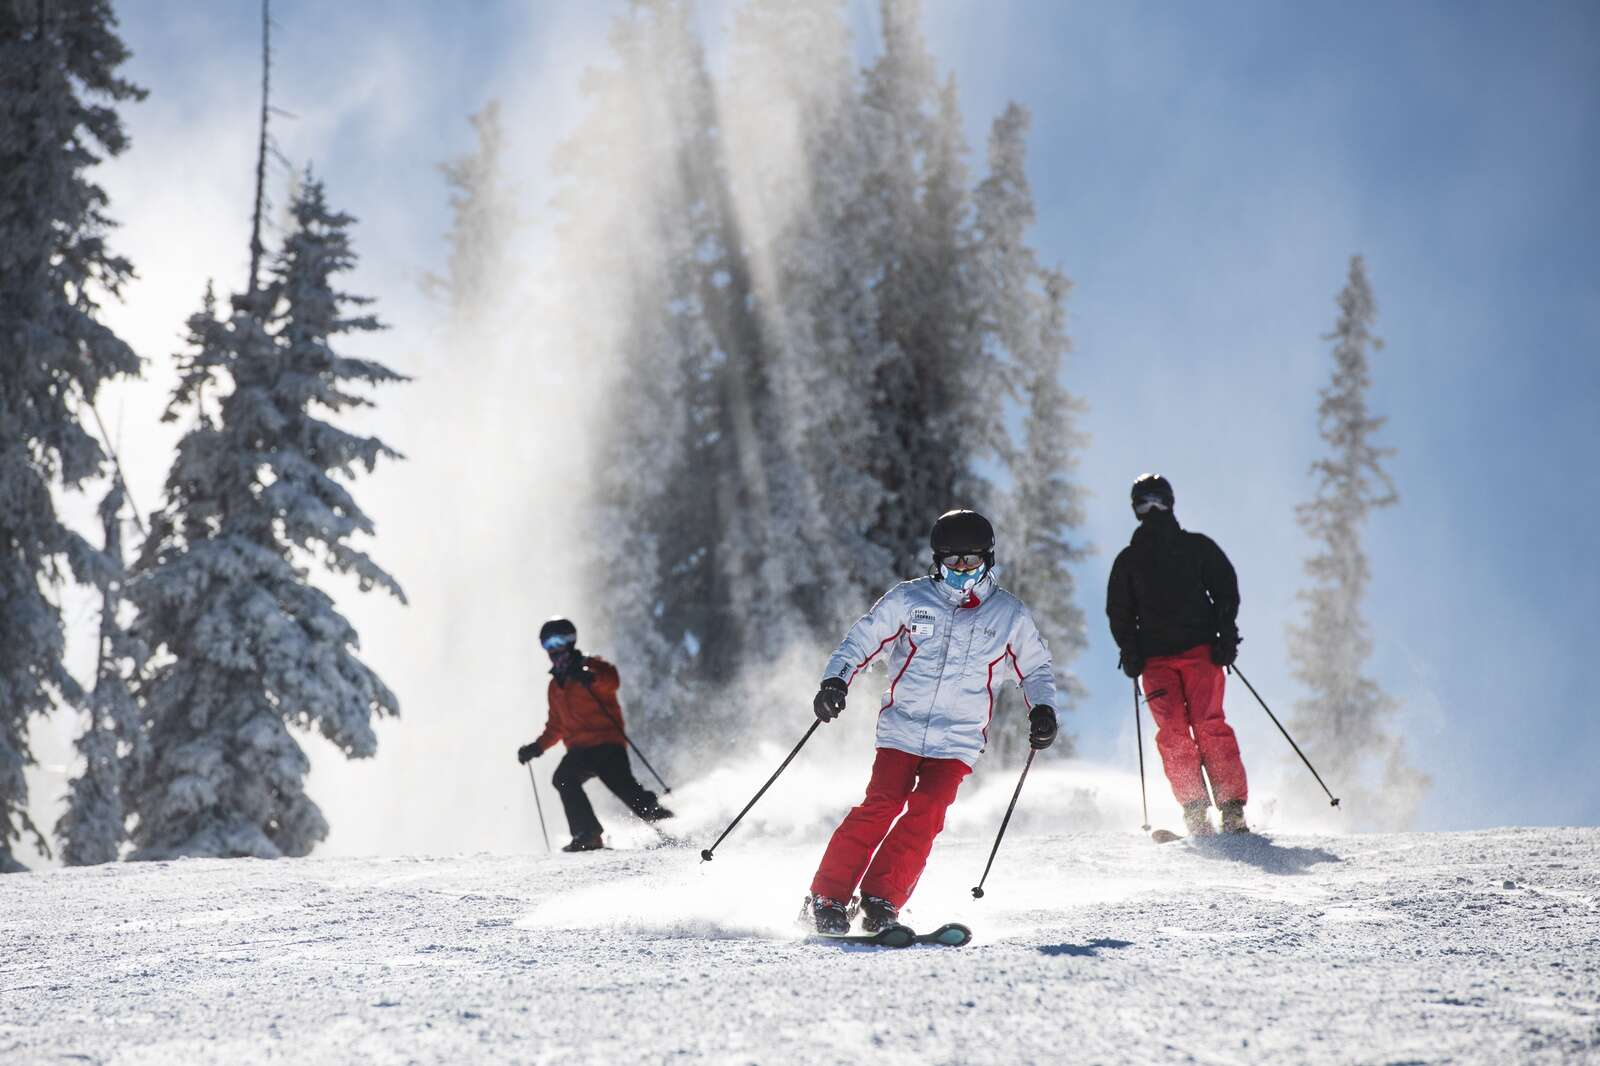 Skiers enjoy freshly made snow on Aspen Mountains opening day on Wednesday, Nov. 25, 2020. (Kelsey Brunner/The Aspen Times)